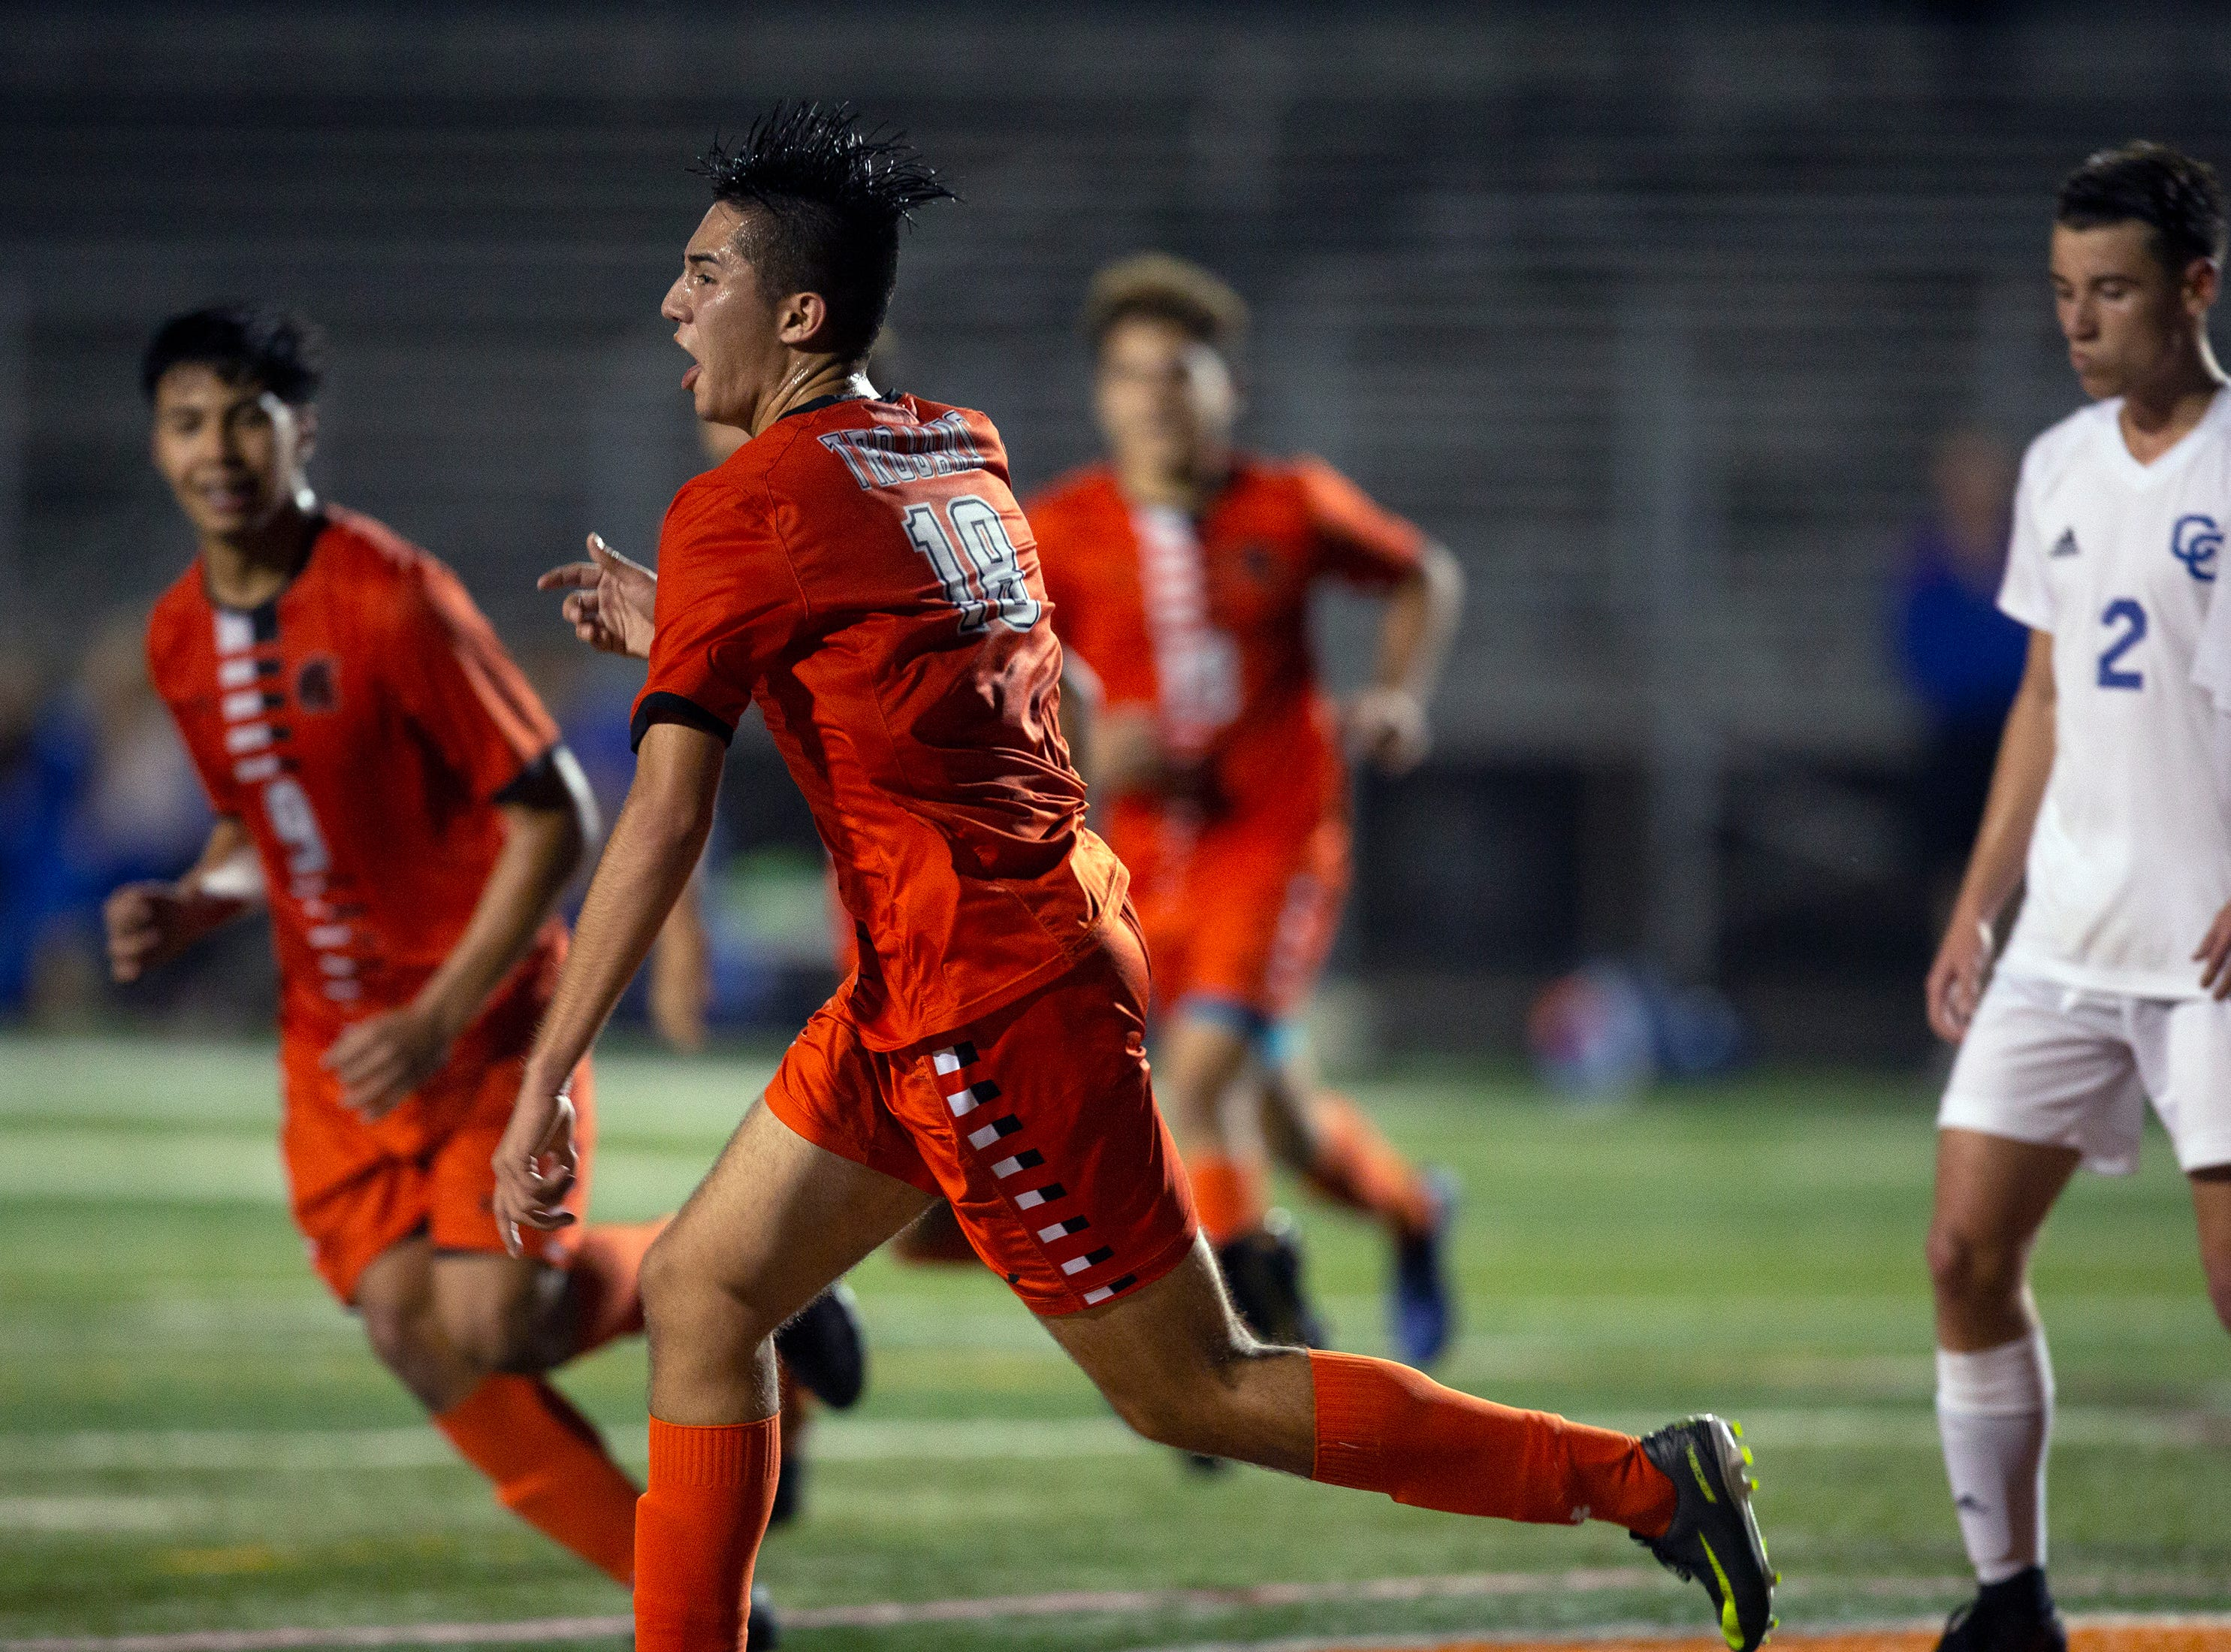 Lely High School's Jesus Barrera celebrates after scoring a goal against Cape Coral, Wednesday, Feb. 6, 2019, at Lely High School.